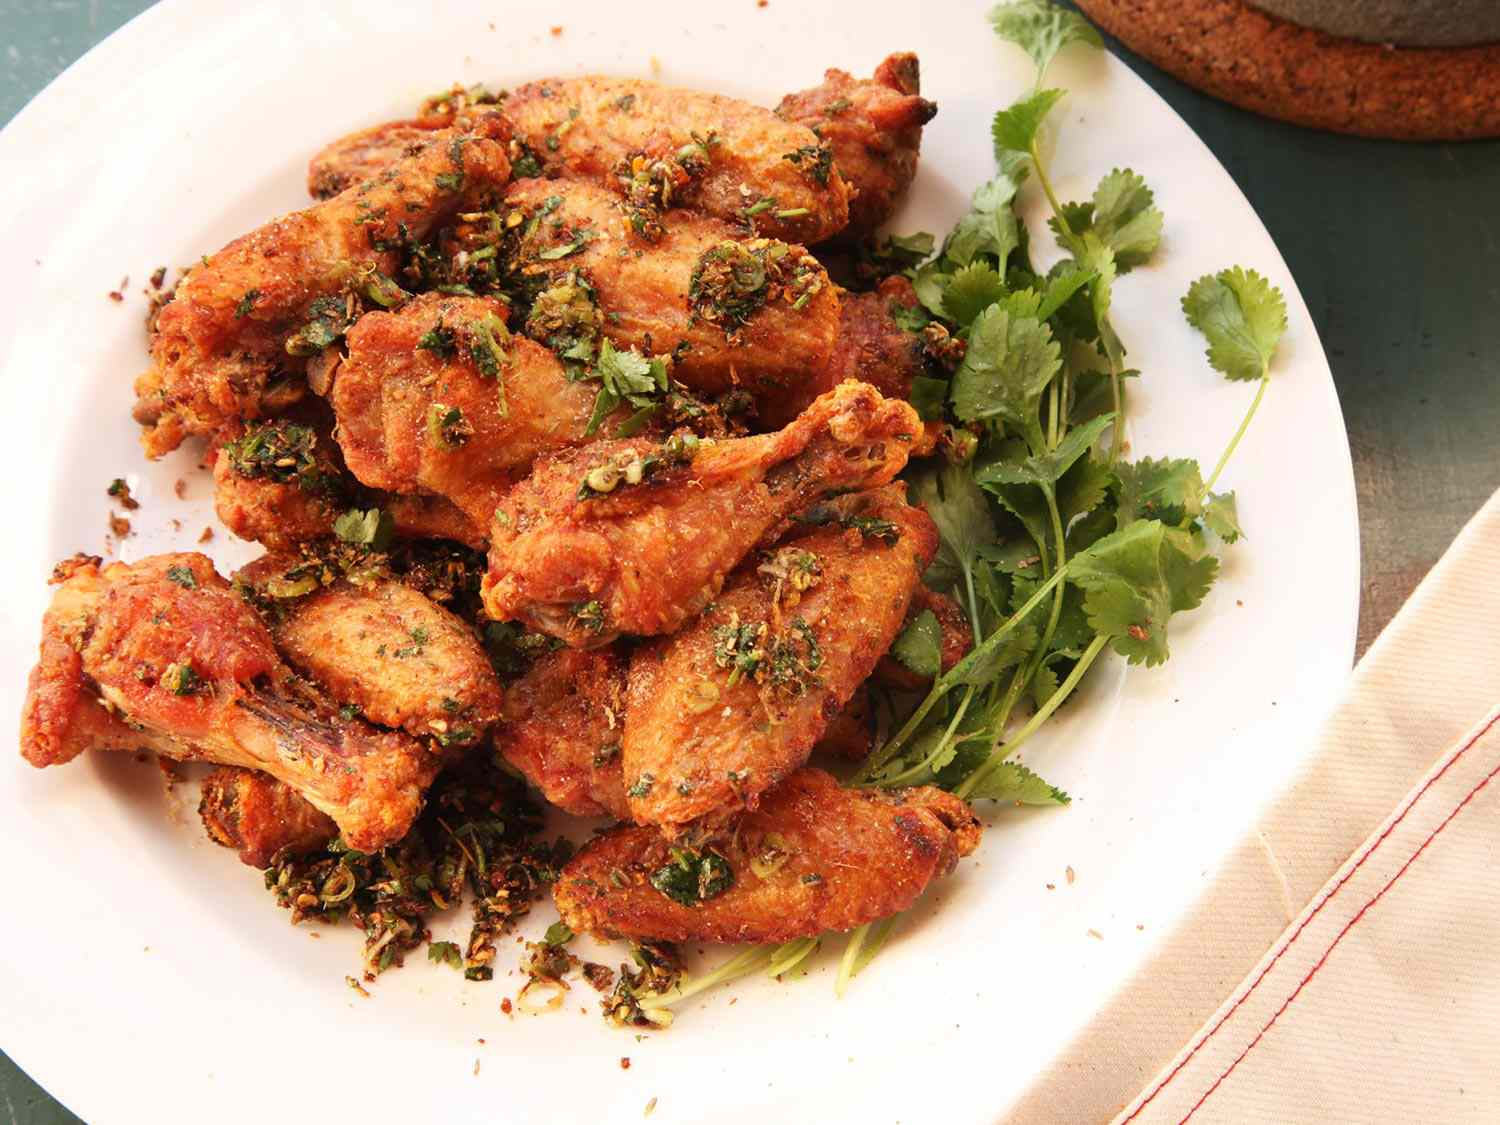 A plate of oven-fried chicken wings spiced with chili, cumin, and anise